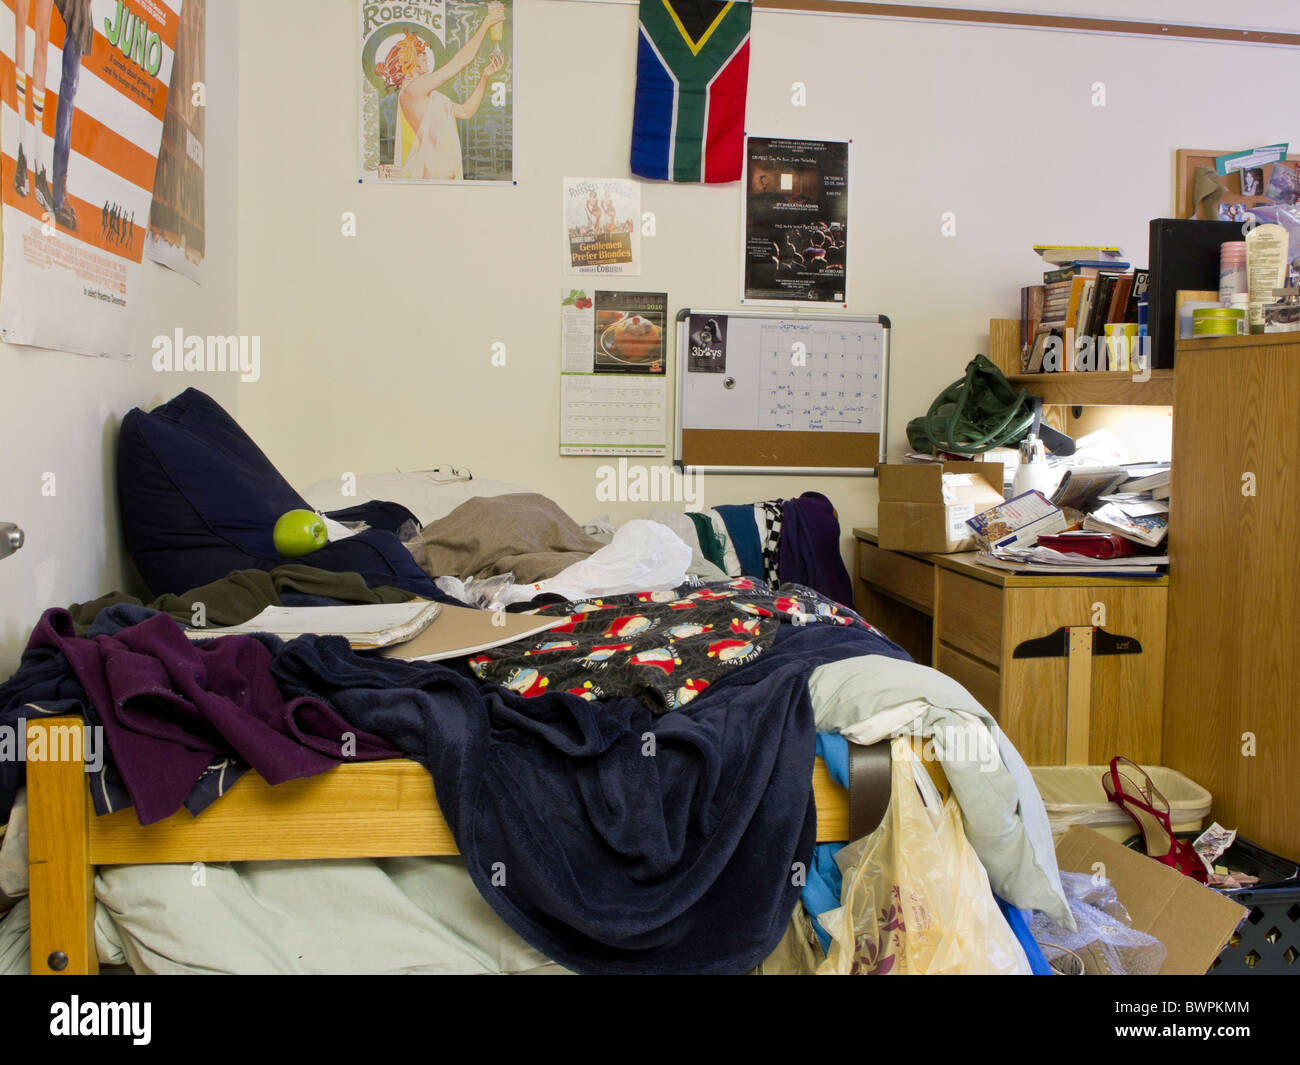 How To Pack Up Your Dorm Room